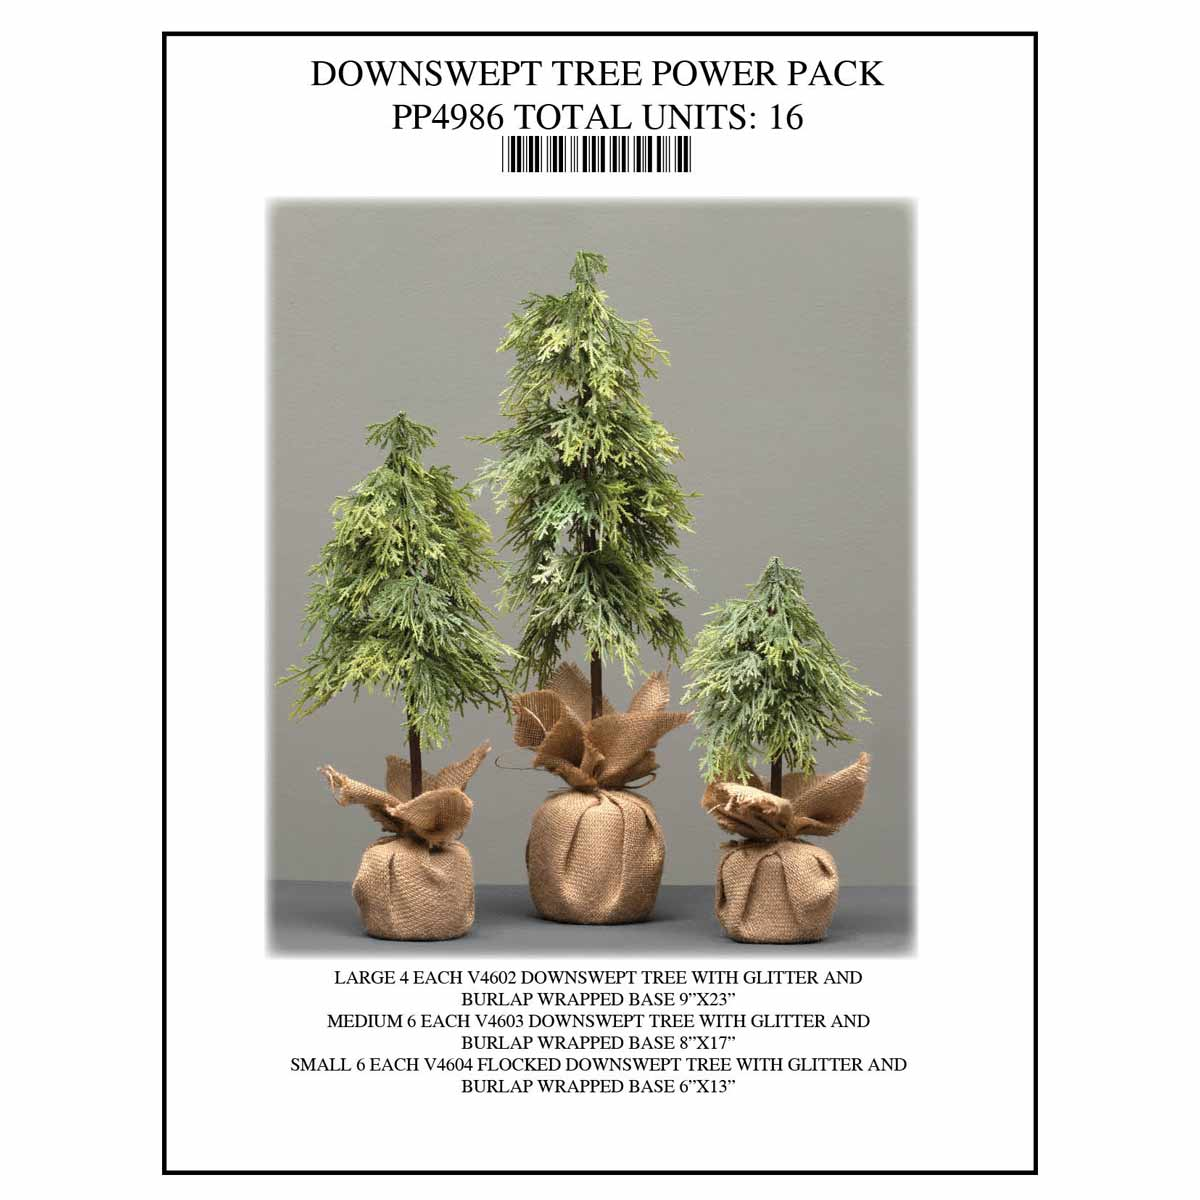 DOWNSWEPT TREE POWER 16 UNITS PP4986